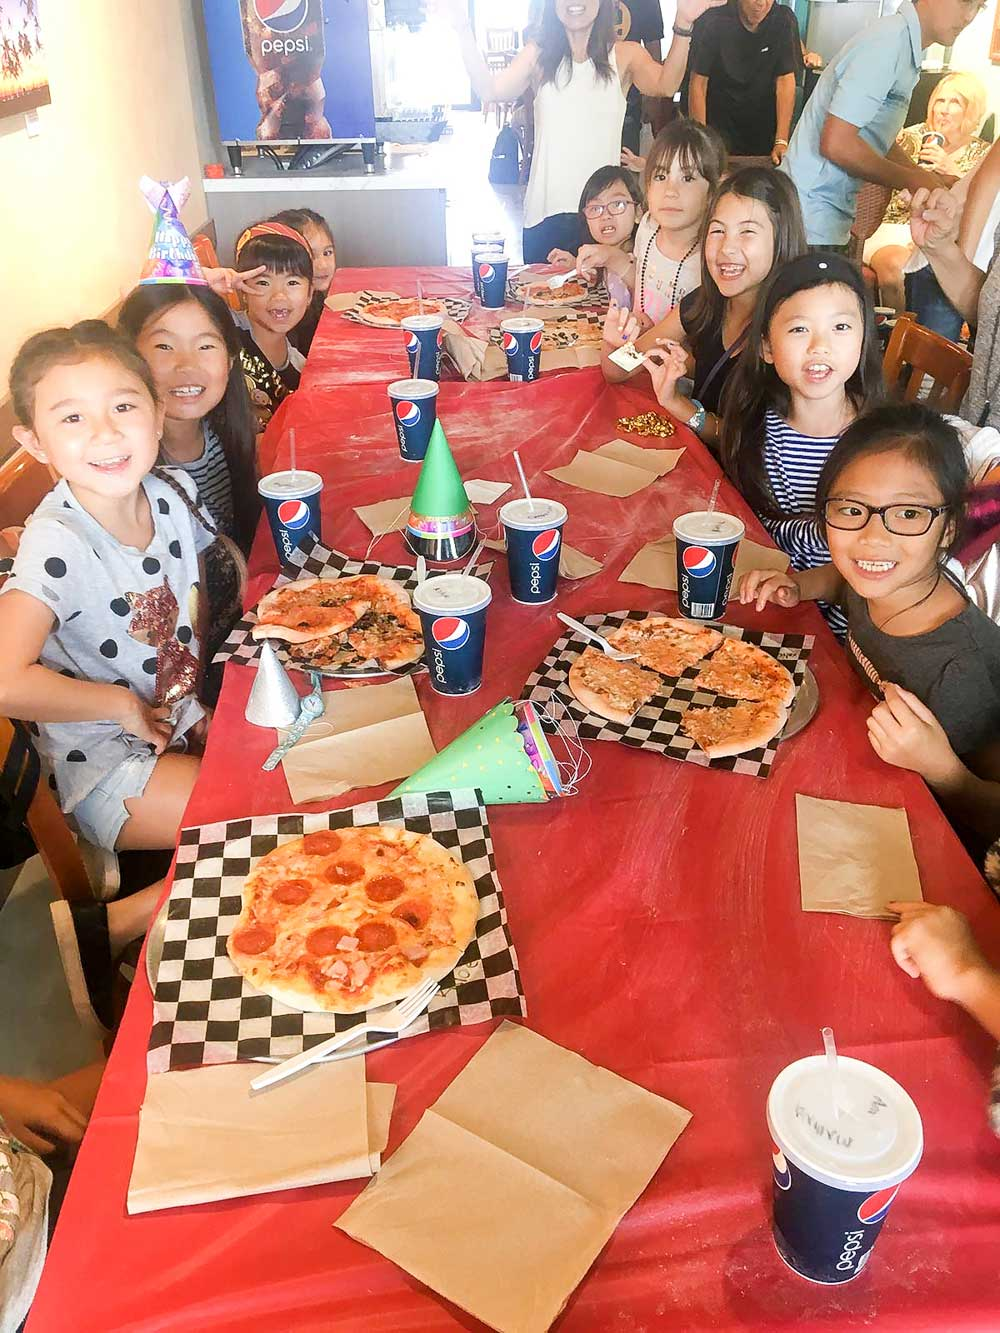 sophies-pizzeria_kids-birthday-pizza-party-1.jpg